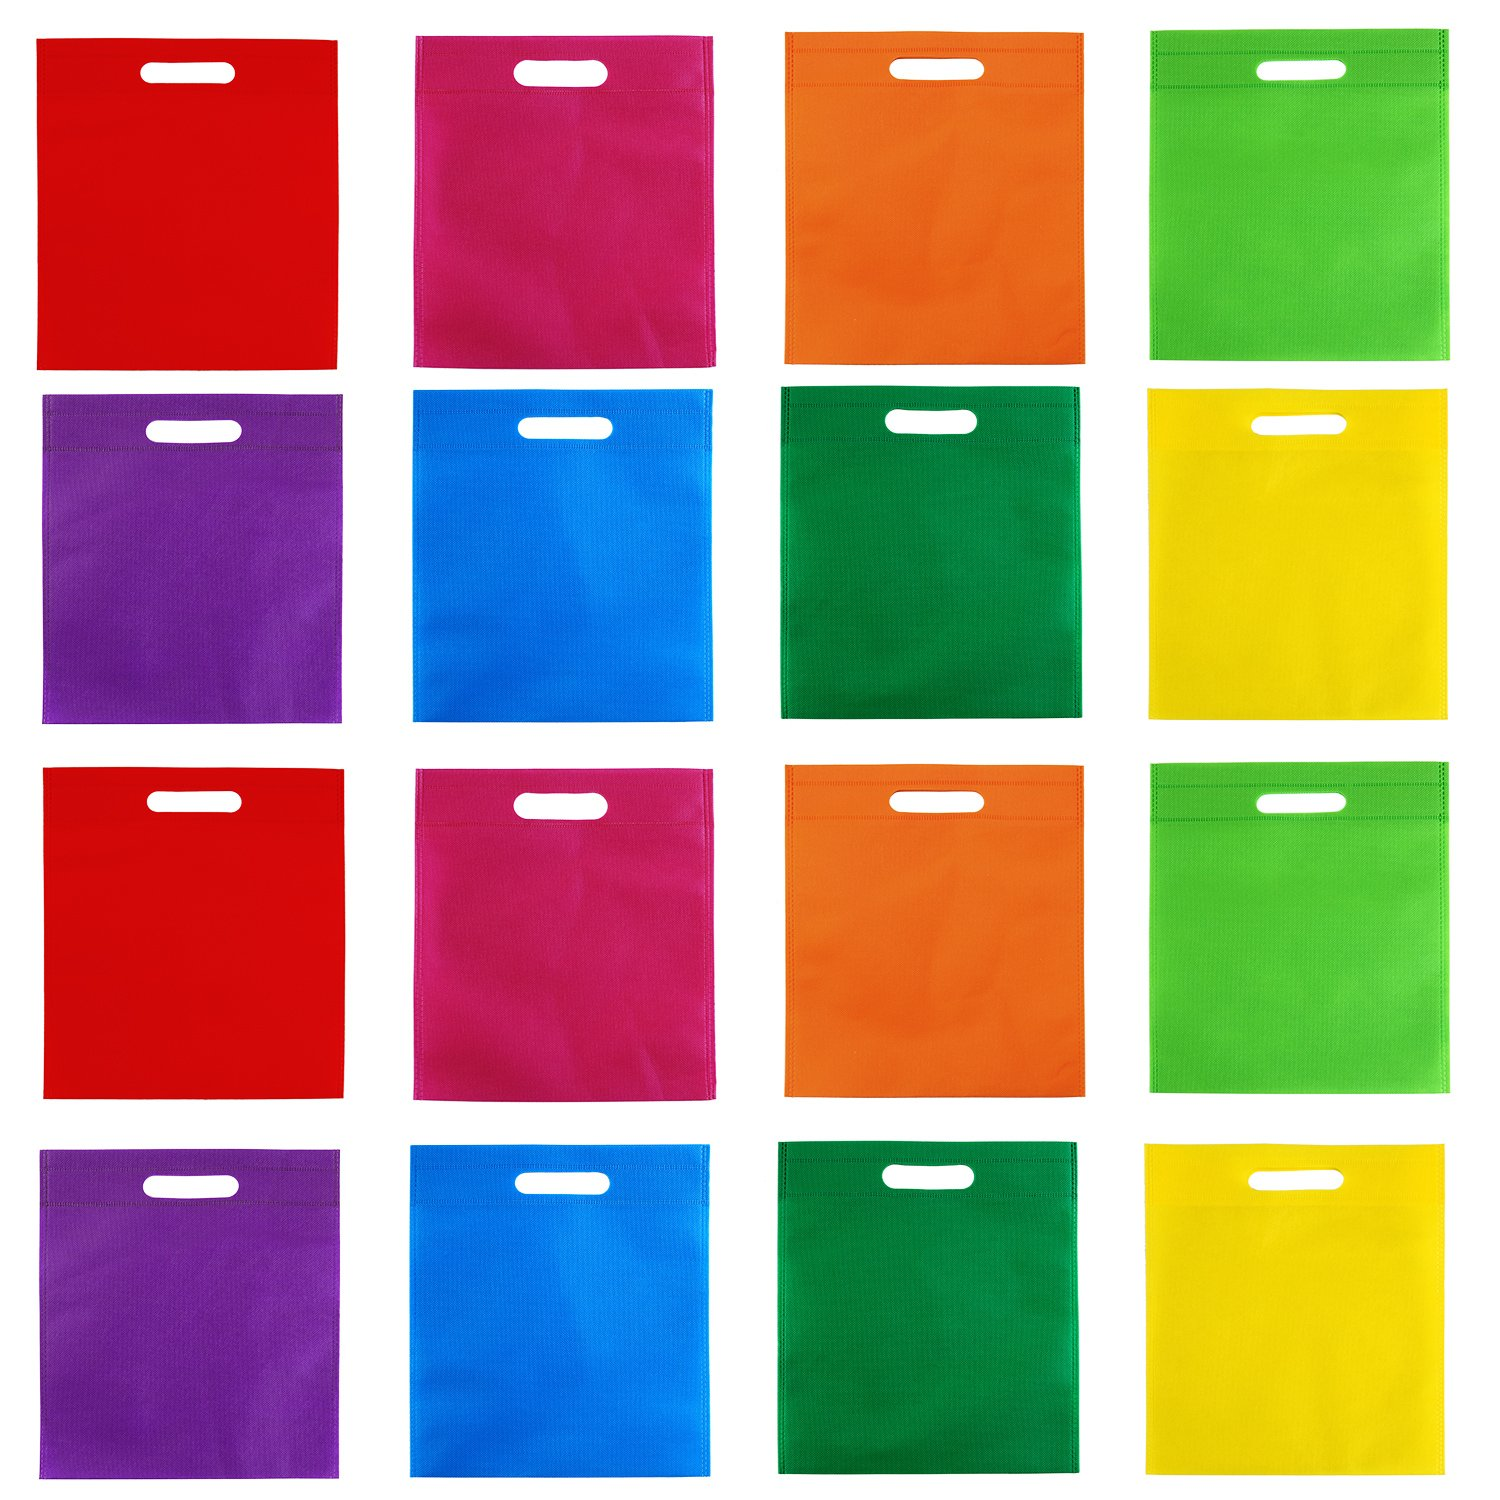 Aneco 40 Pieces 9.5 by 11.5 Inches Poly Non-woven Bags Party Gift Tote Bag with Handles Goodie Rainbow Colors Treat Bag For Party Favors,8 Colors